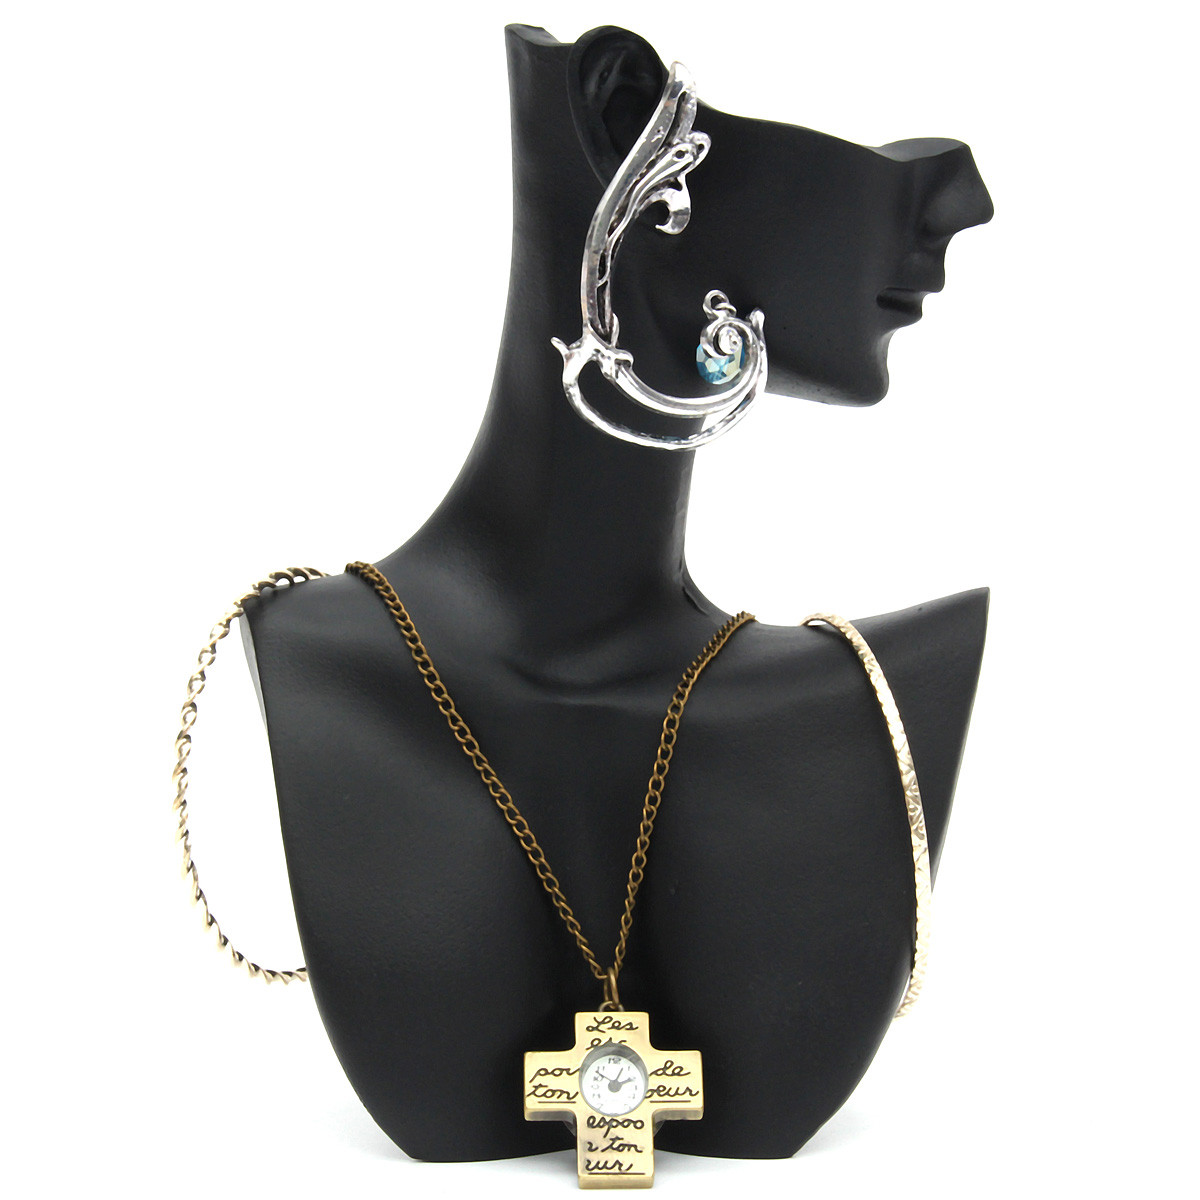 Jewellery Stand Designs : New design jewelry display stand bust for necklace